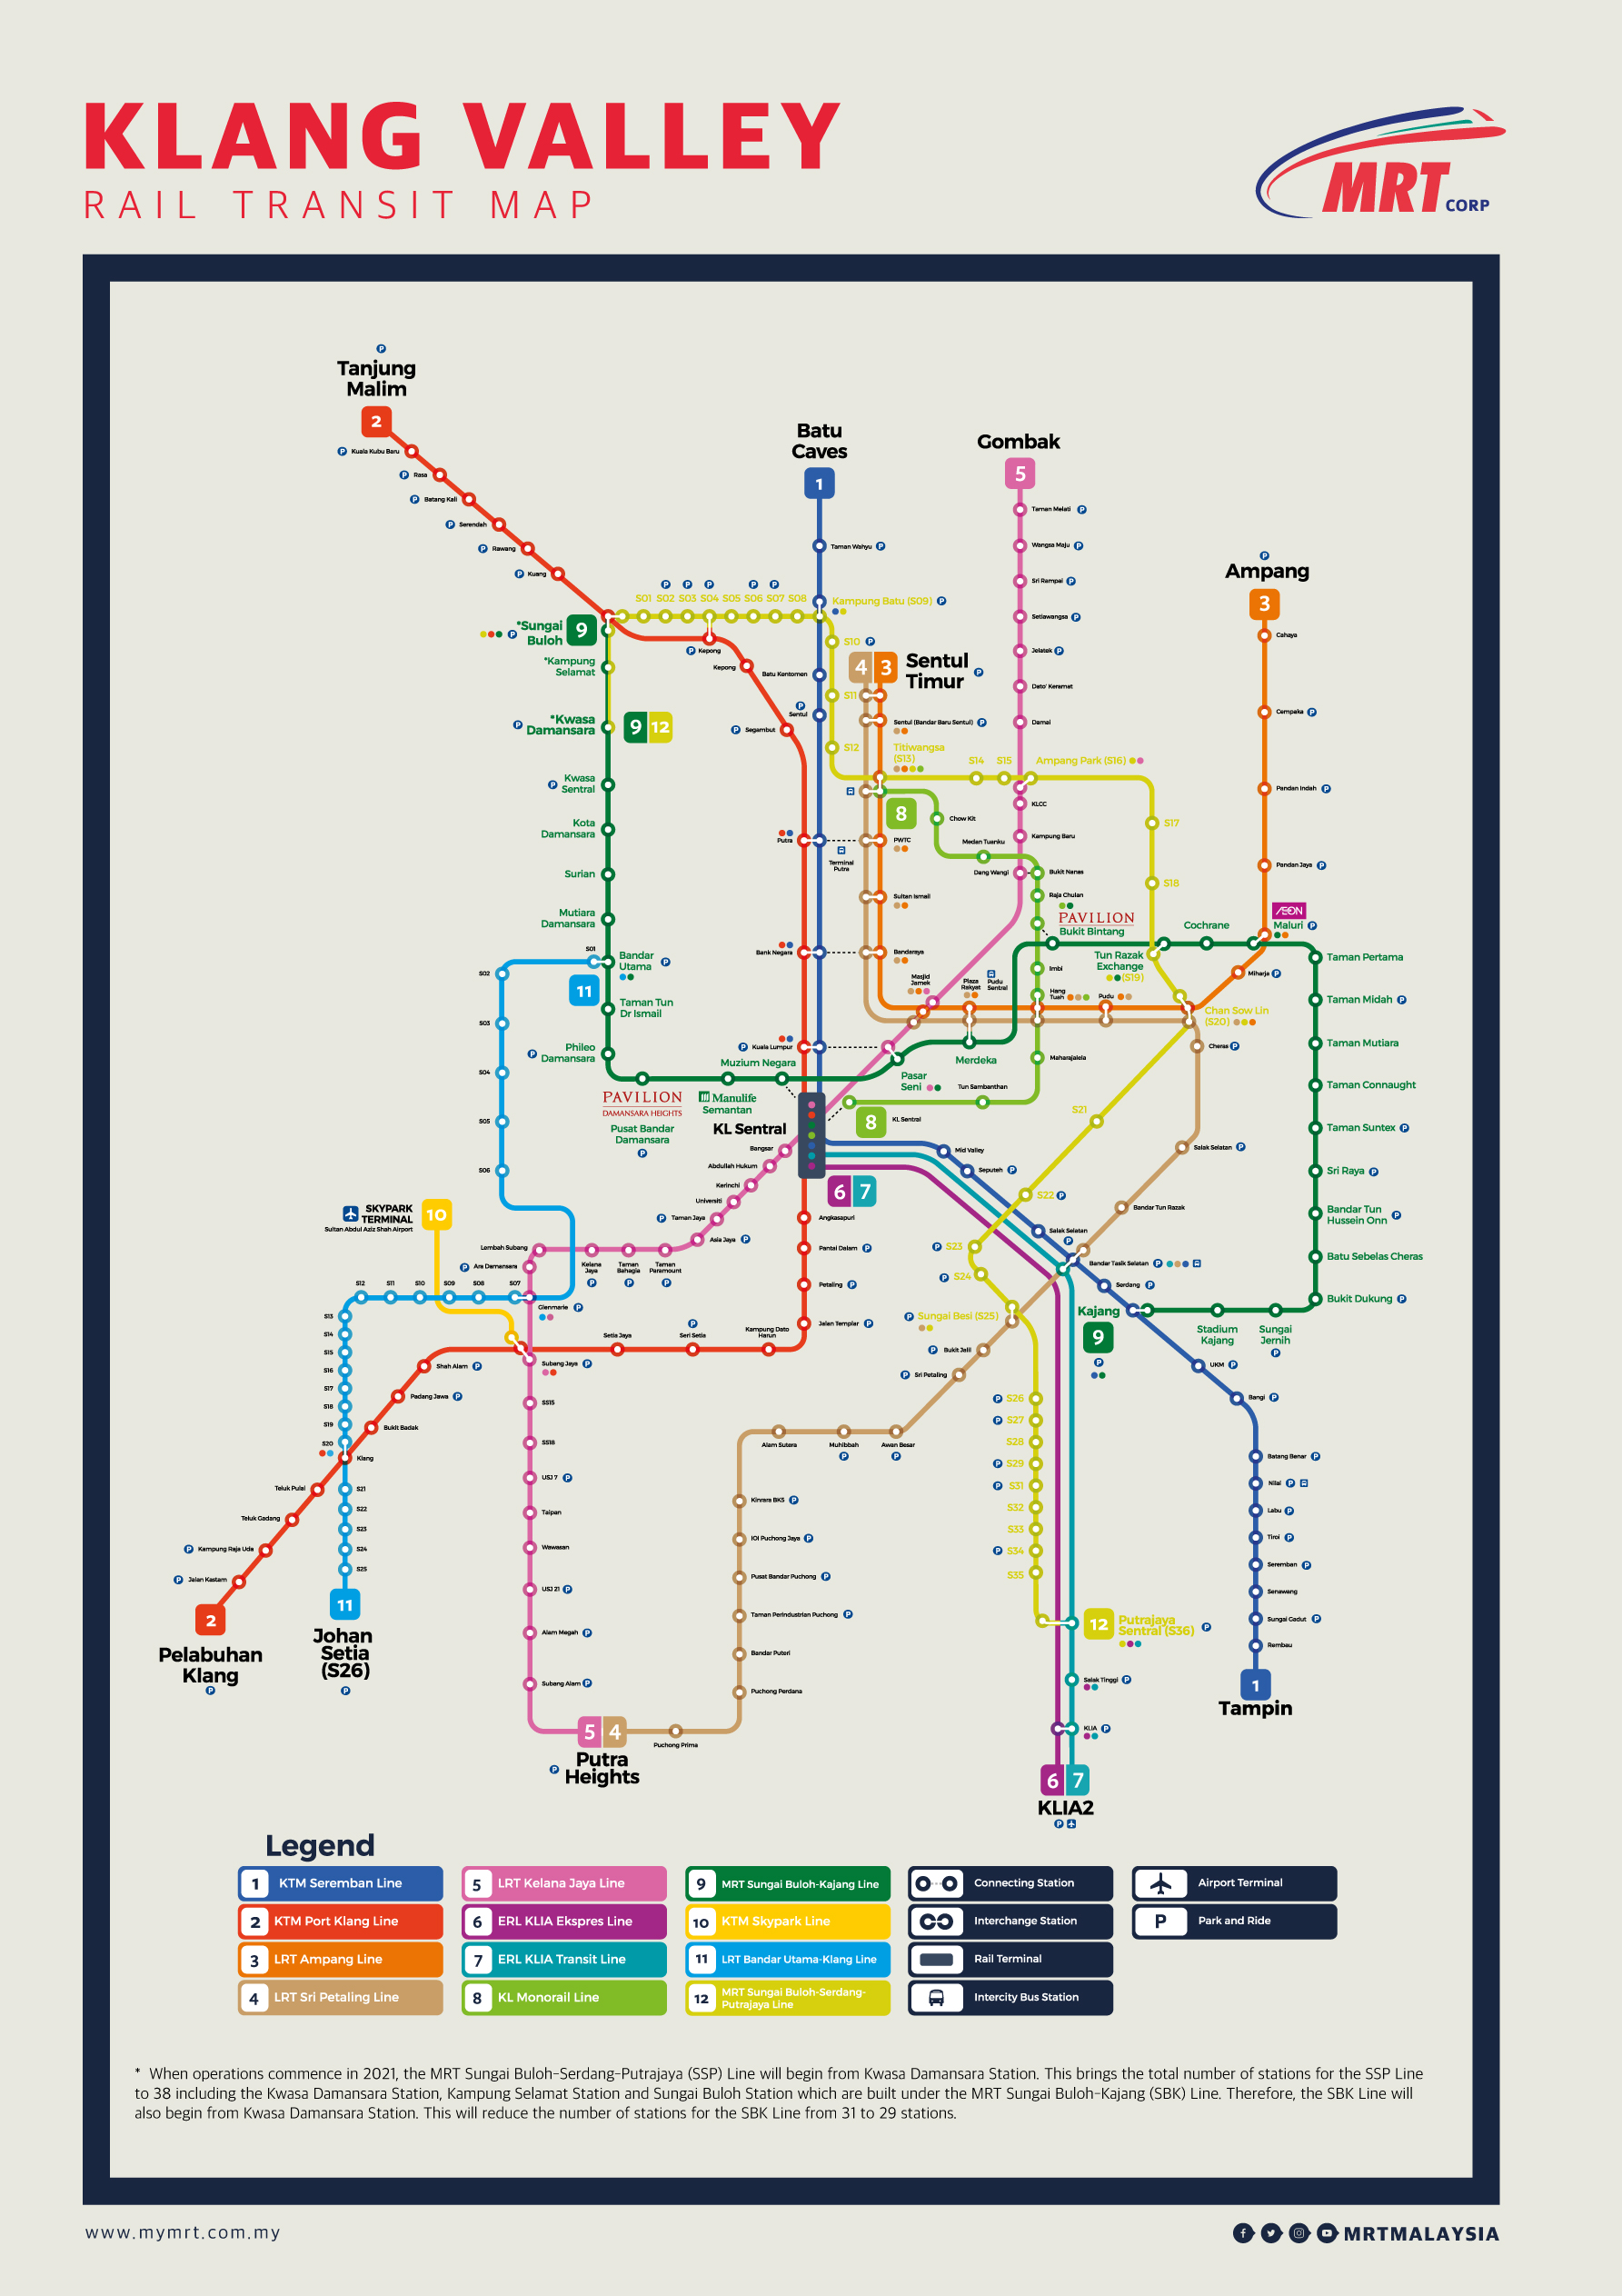 Map Of Asia Jaya Lrt Station.Travel With Mrt Mrt Corp